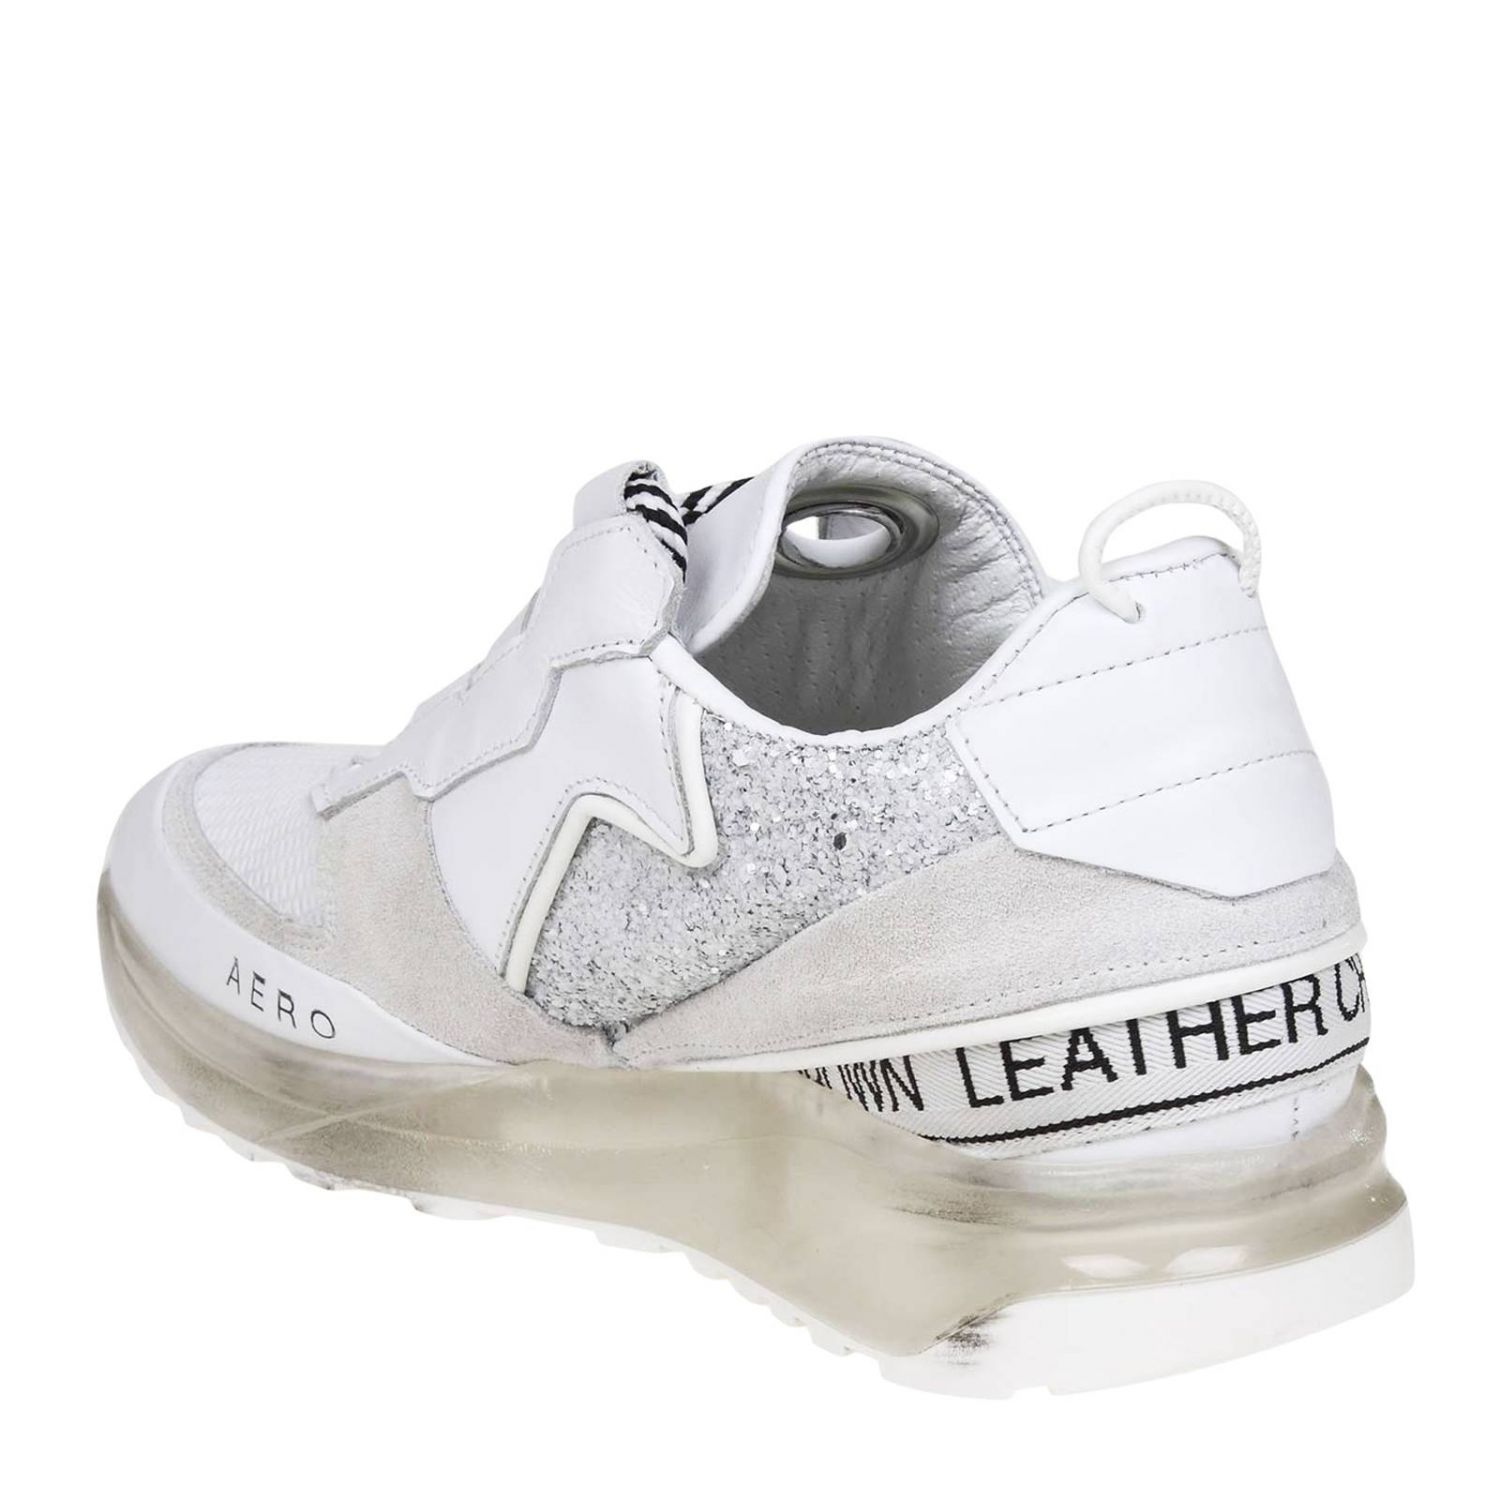 Sneakers women Leather Crown white 4